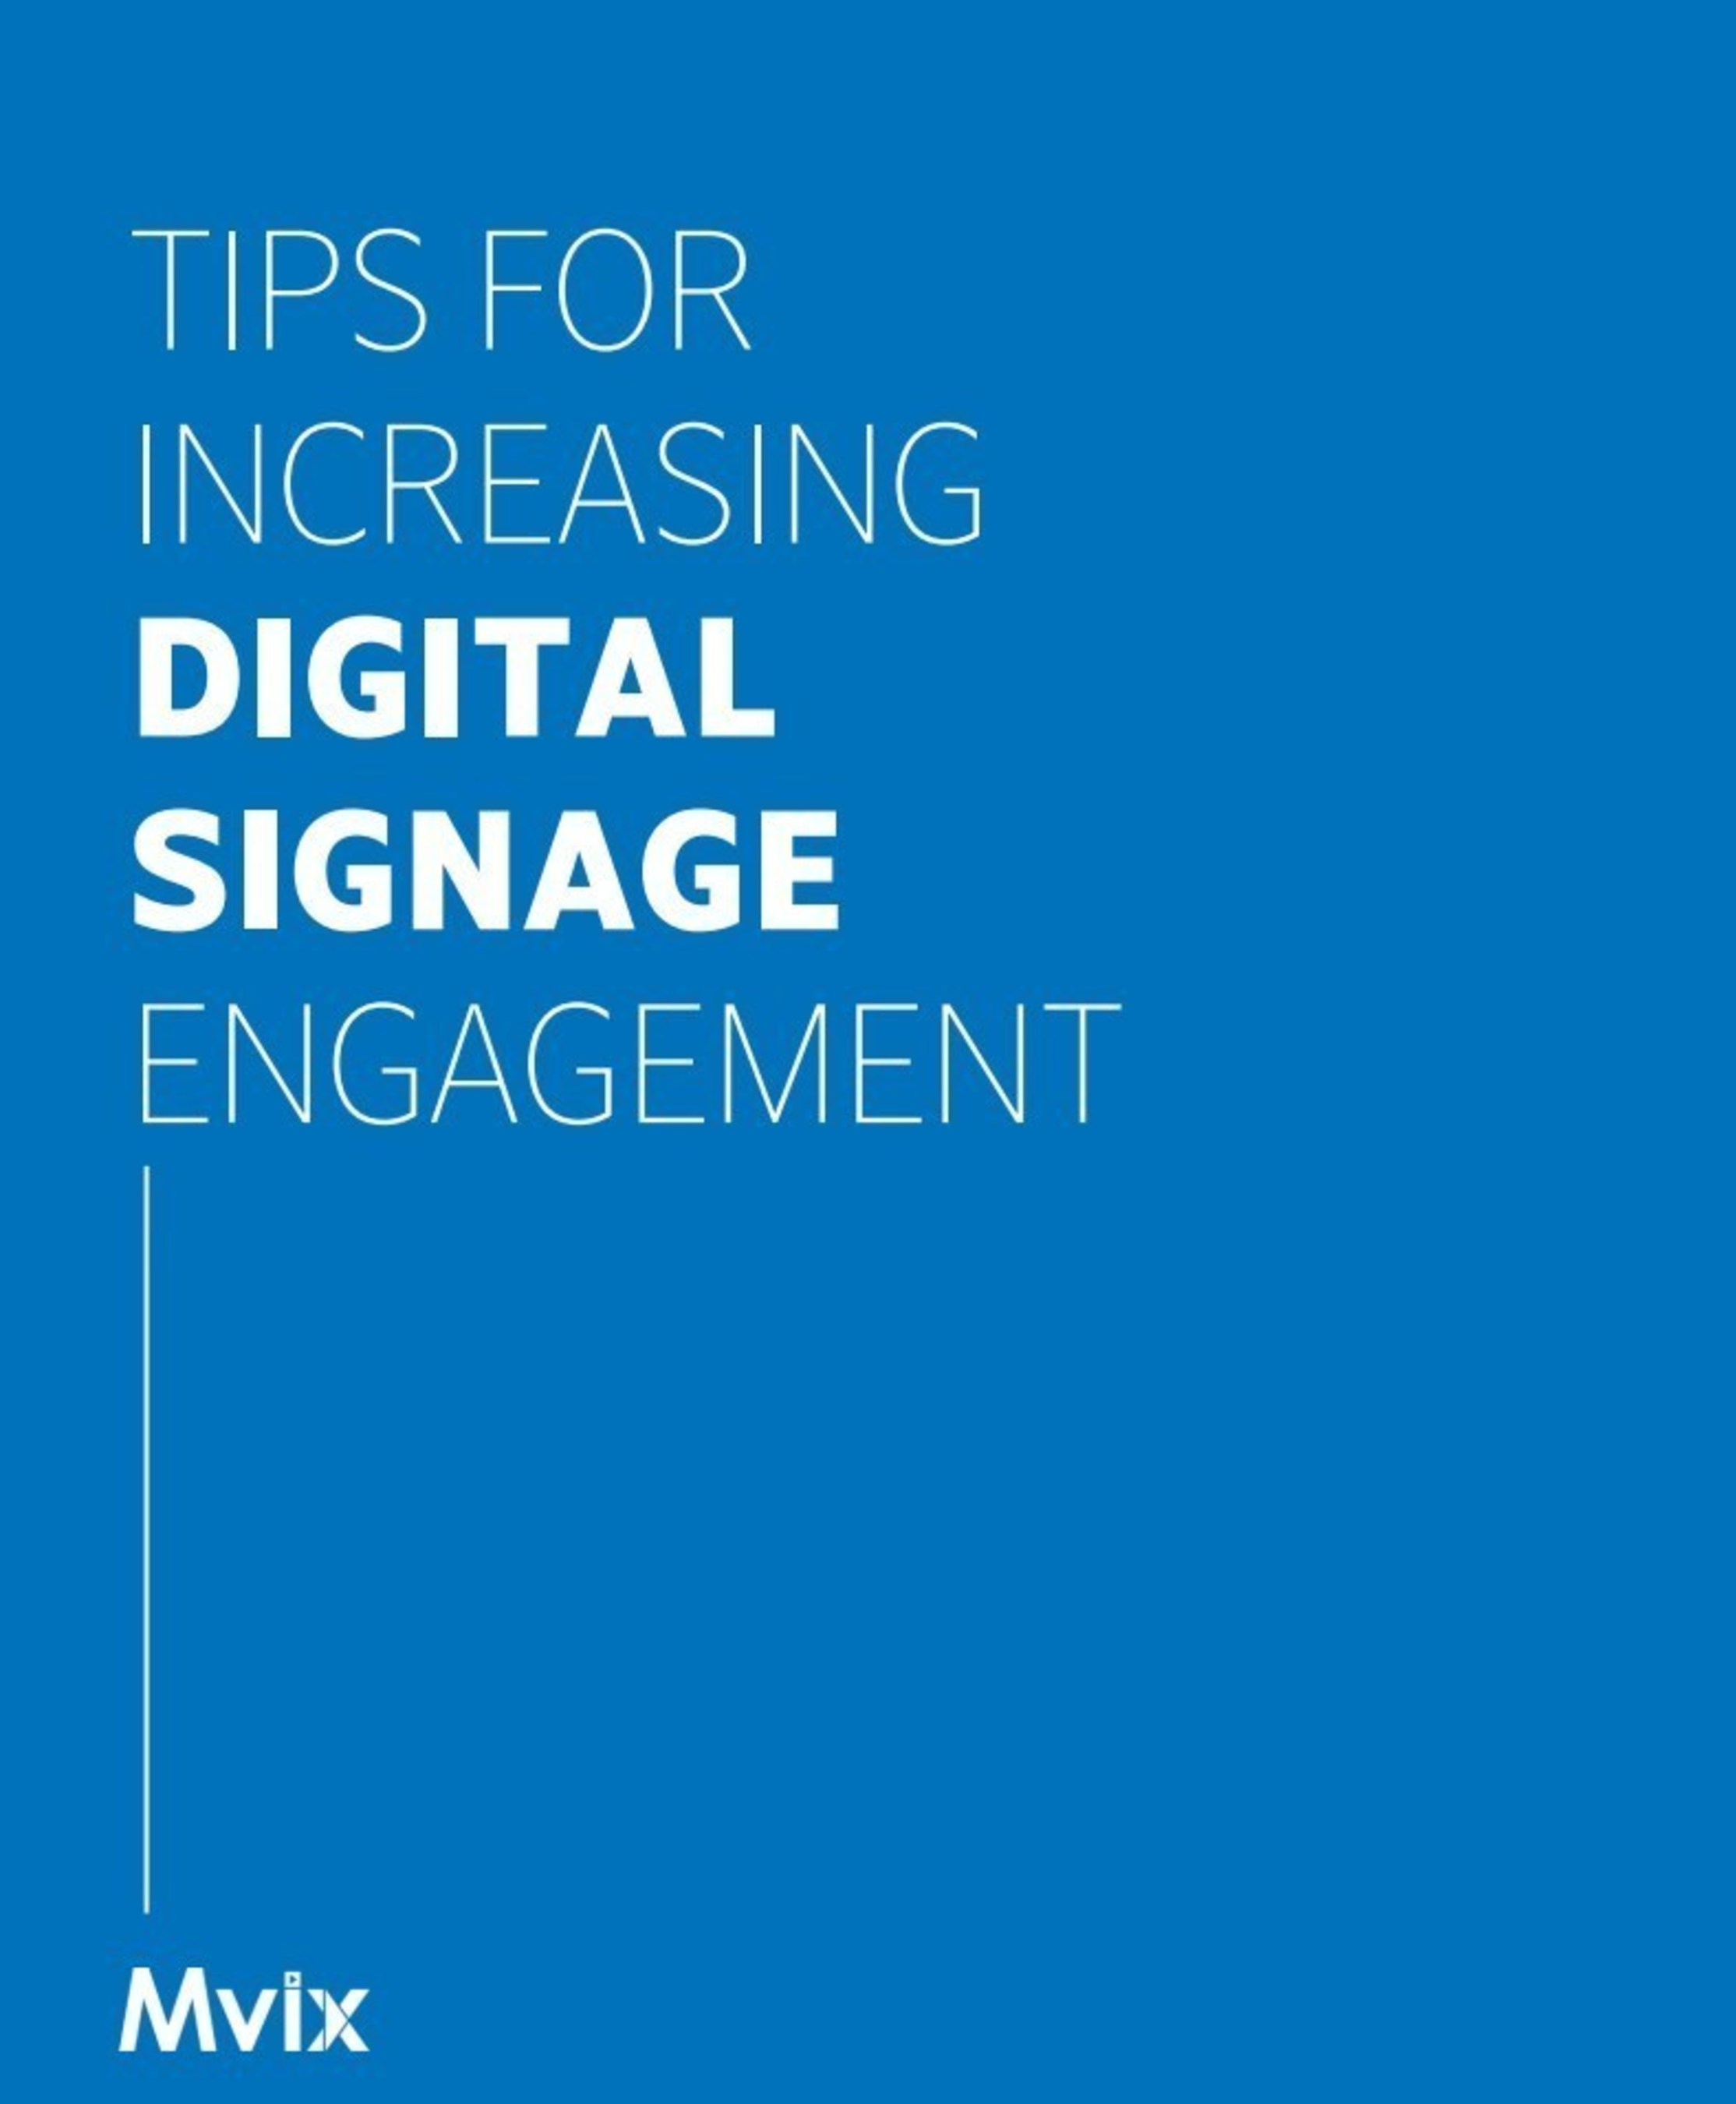 New Thought Leadership Paper Delivers Tips for an Engaging Digital Signage Campaign